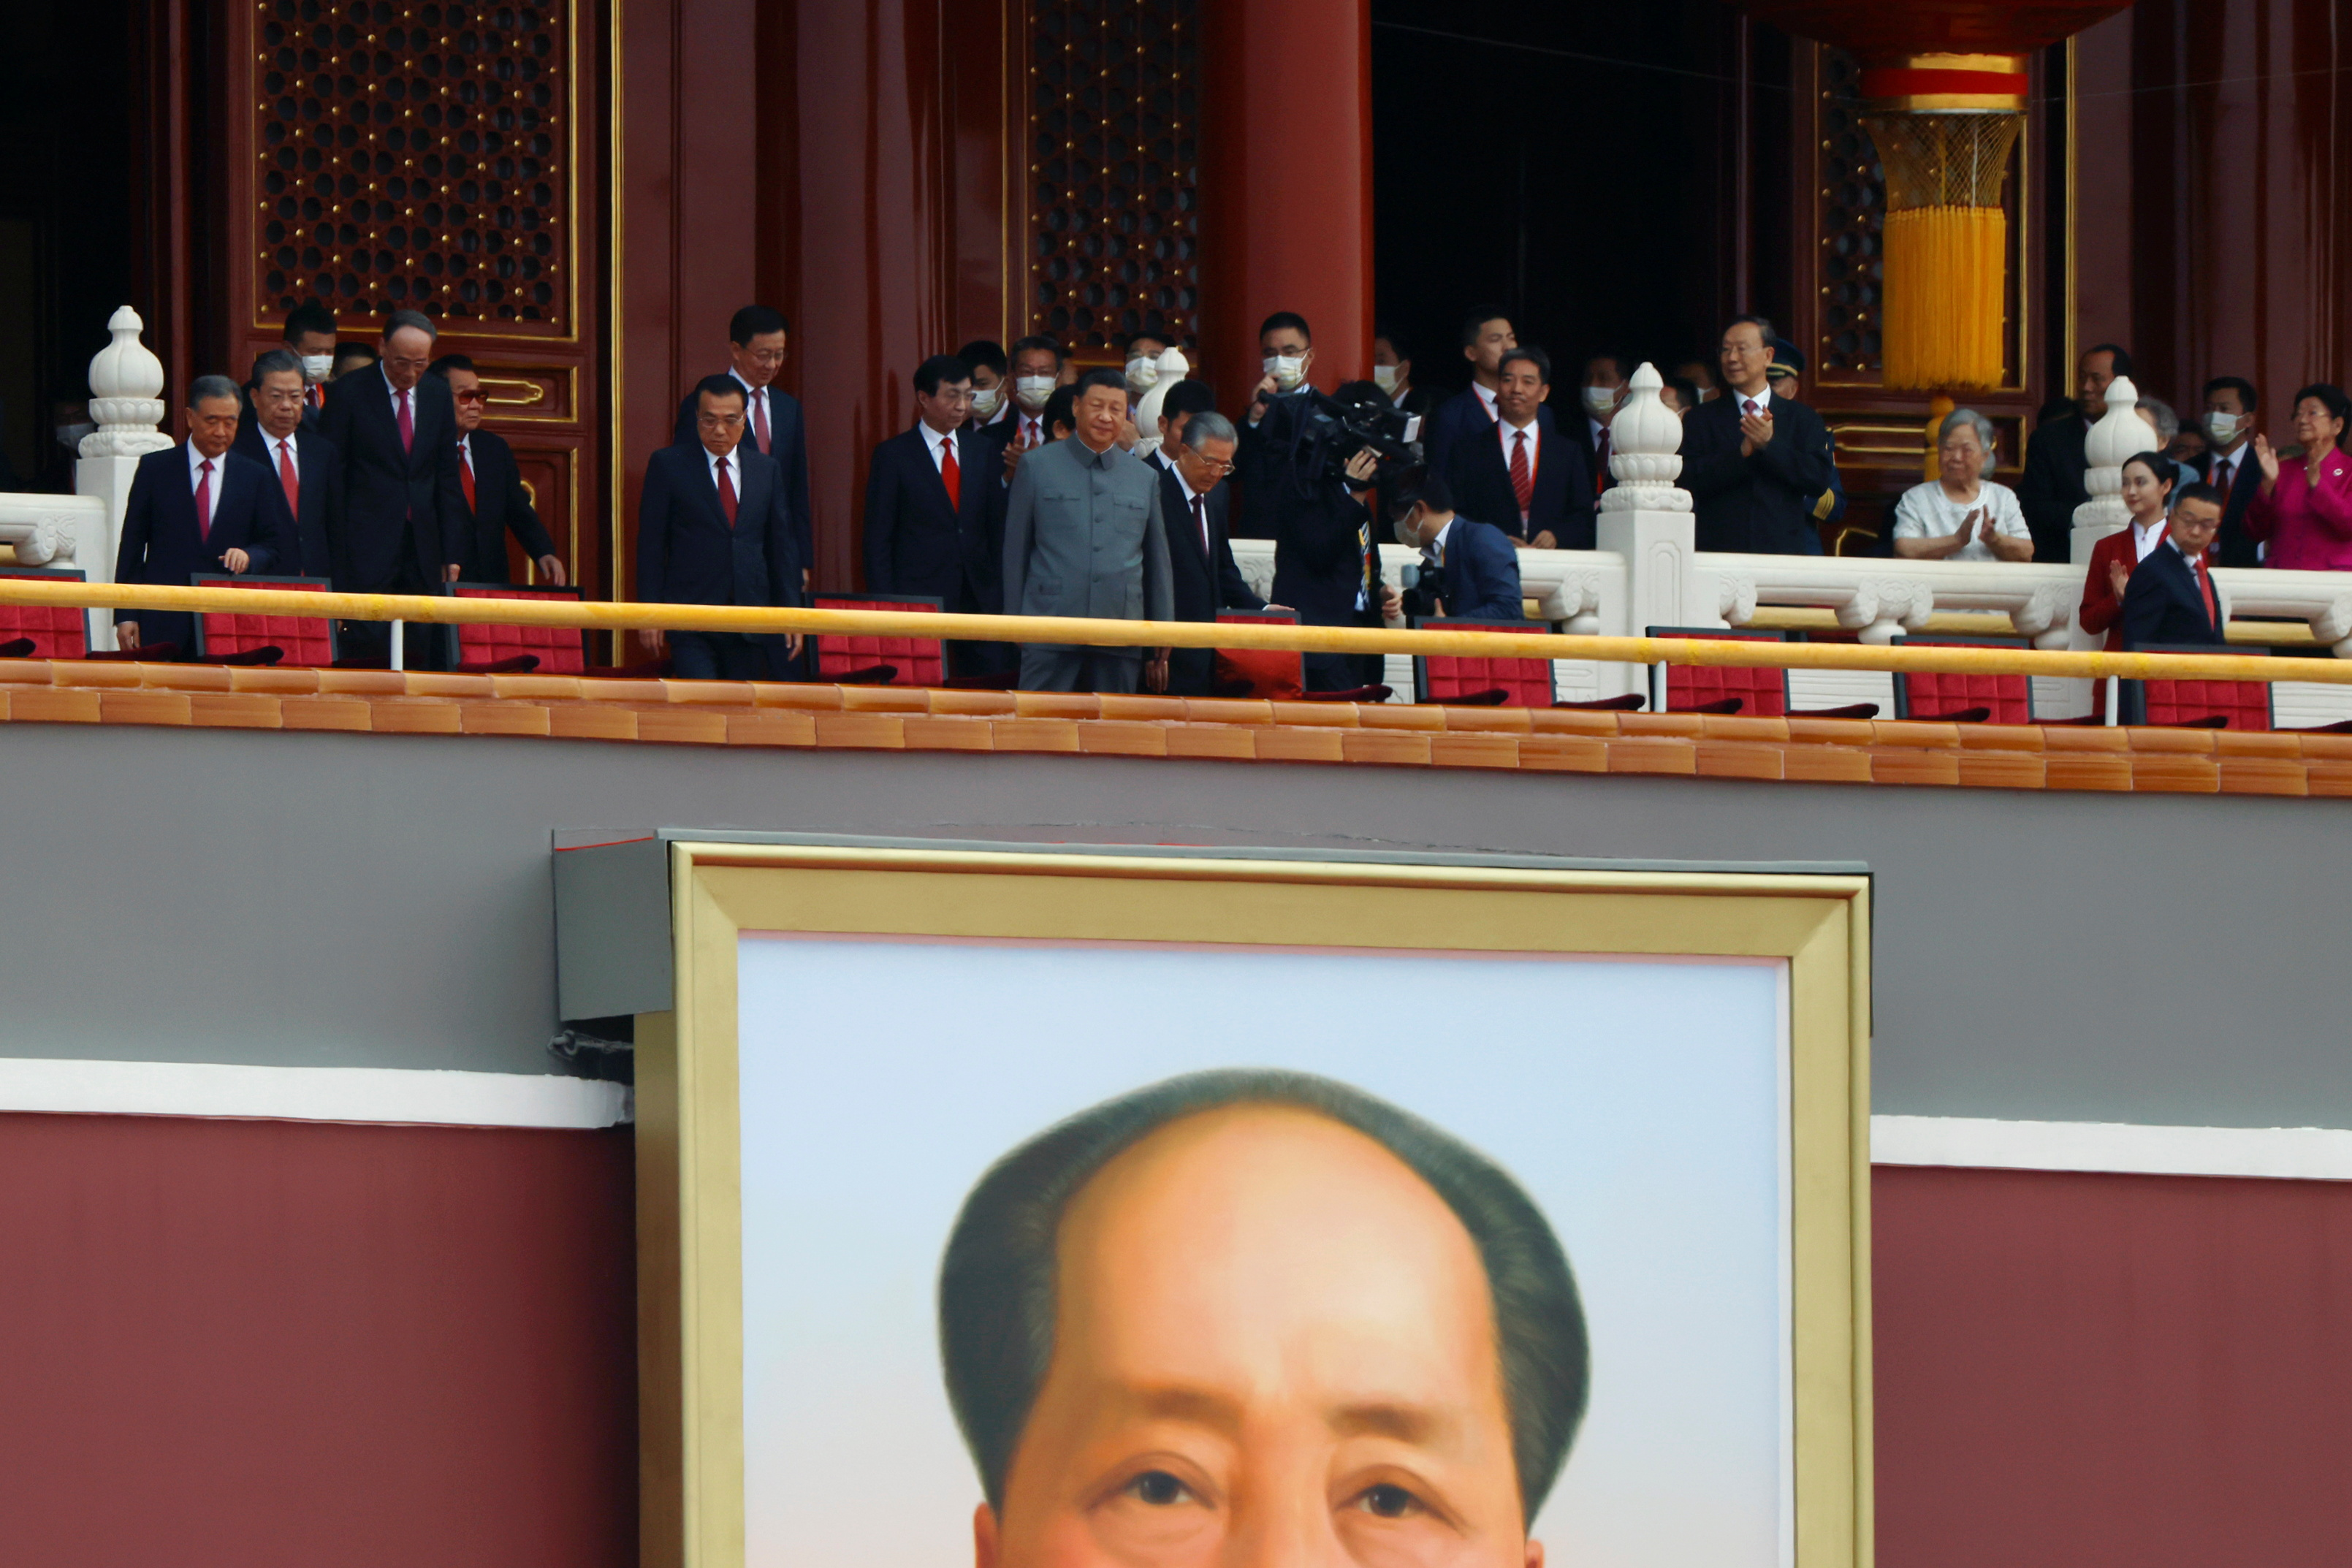 Chinese President Xi Jinping stands above a giant portrait of late Chinese chairman Mao Zedong as he arrives for the event marking the 100th founding anniversary of the Communist Party of China, on Tiananmen Square in Beijing, China July 1, 2021. REUTERS/Carlos Garcia Rawlins - RC2BBO92BEIT